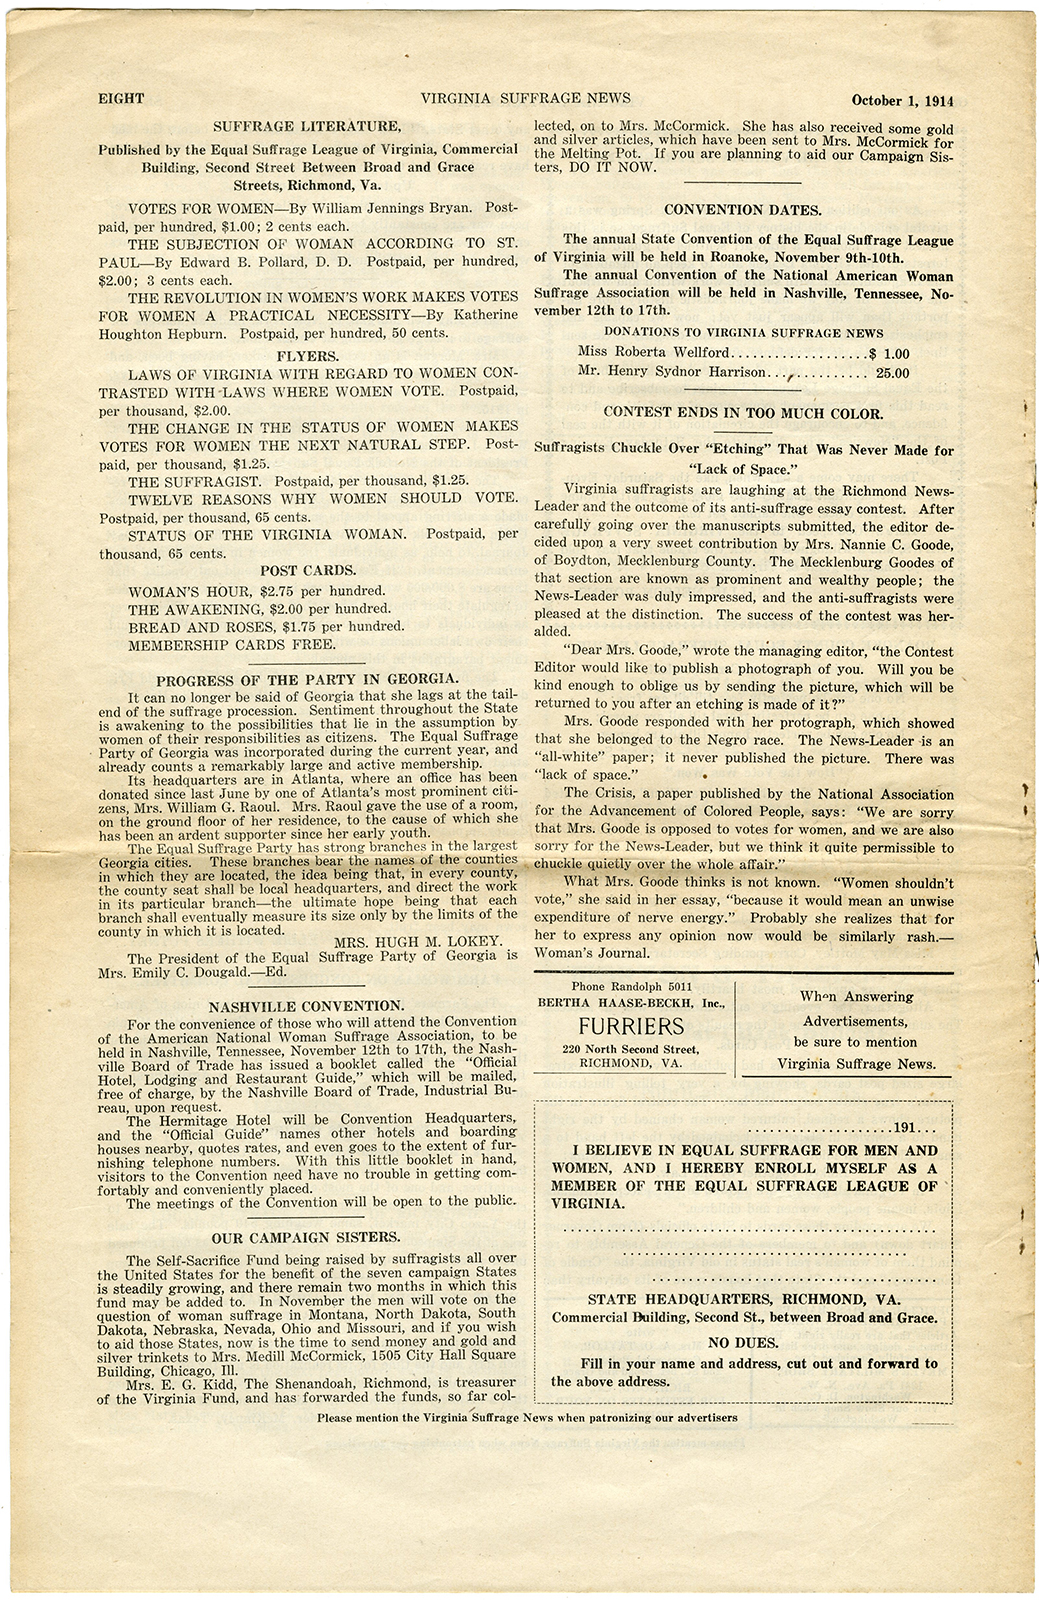 VCU_M9 B56 Virginia Suffrage News Oct 1 1914 p8 rsz.jpg